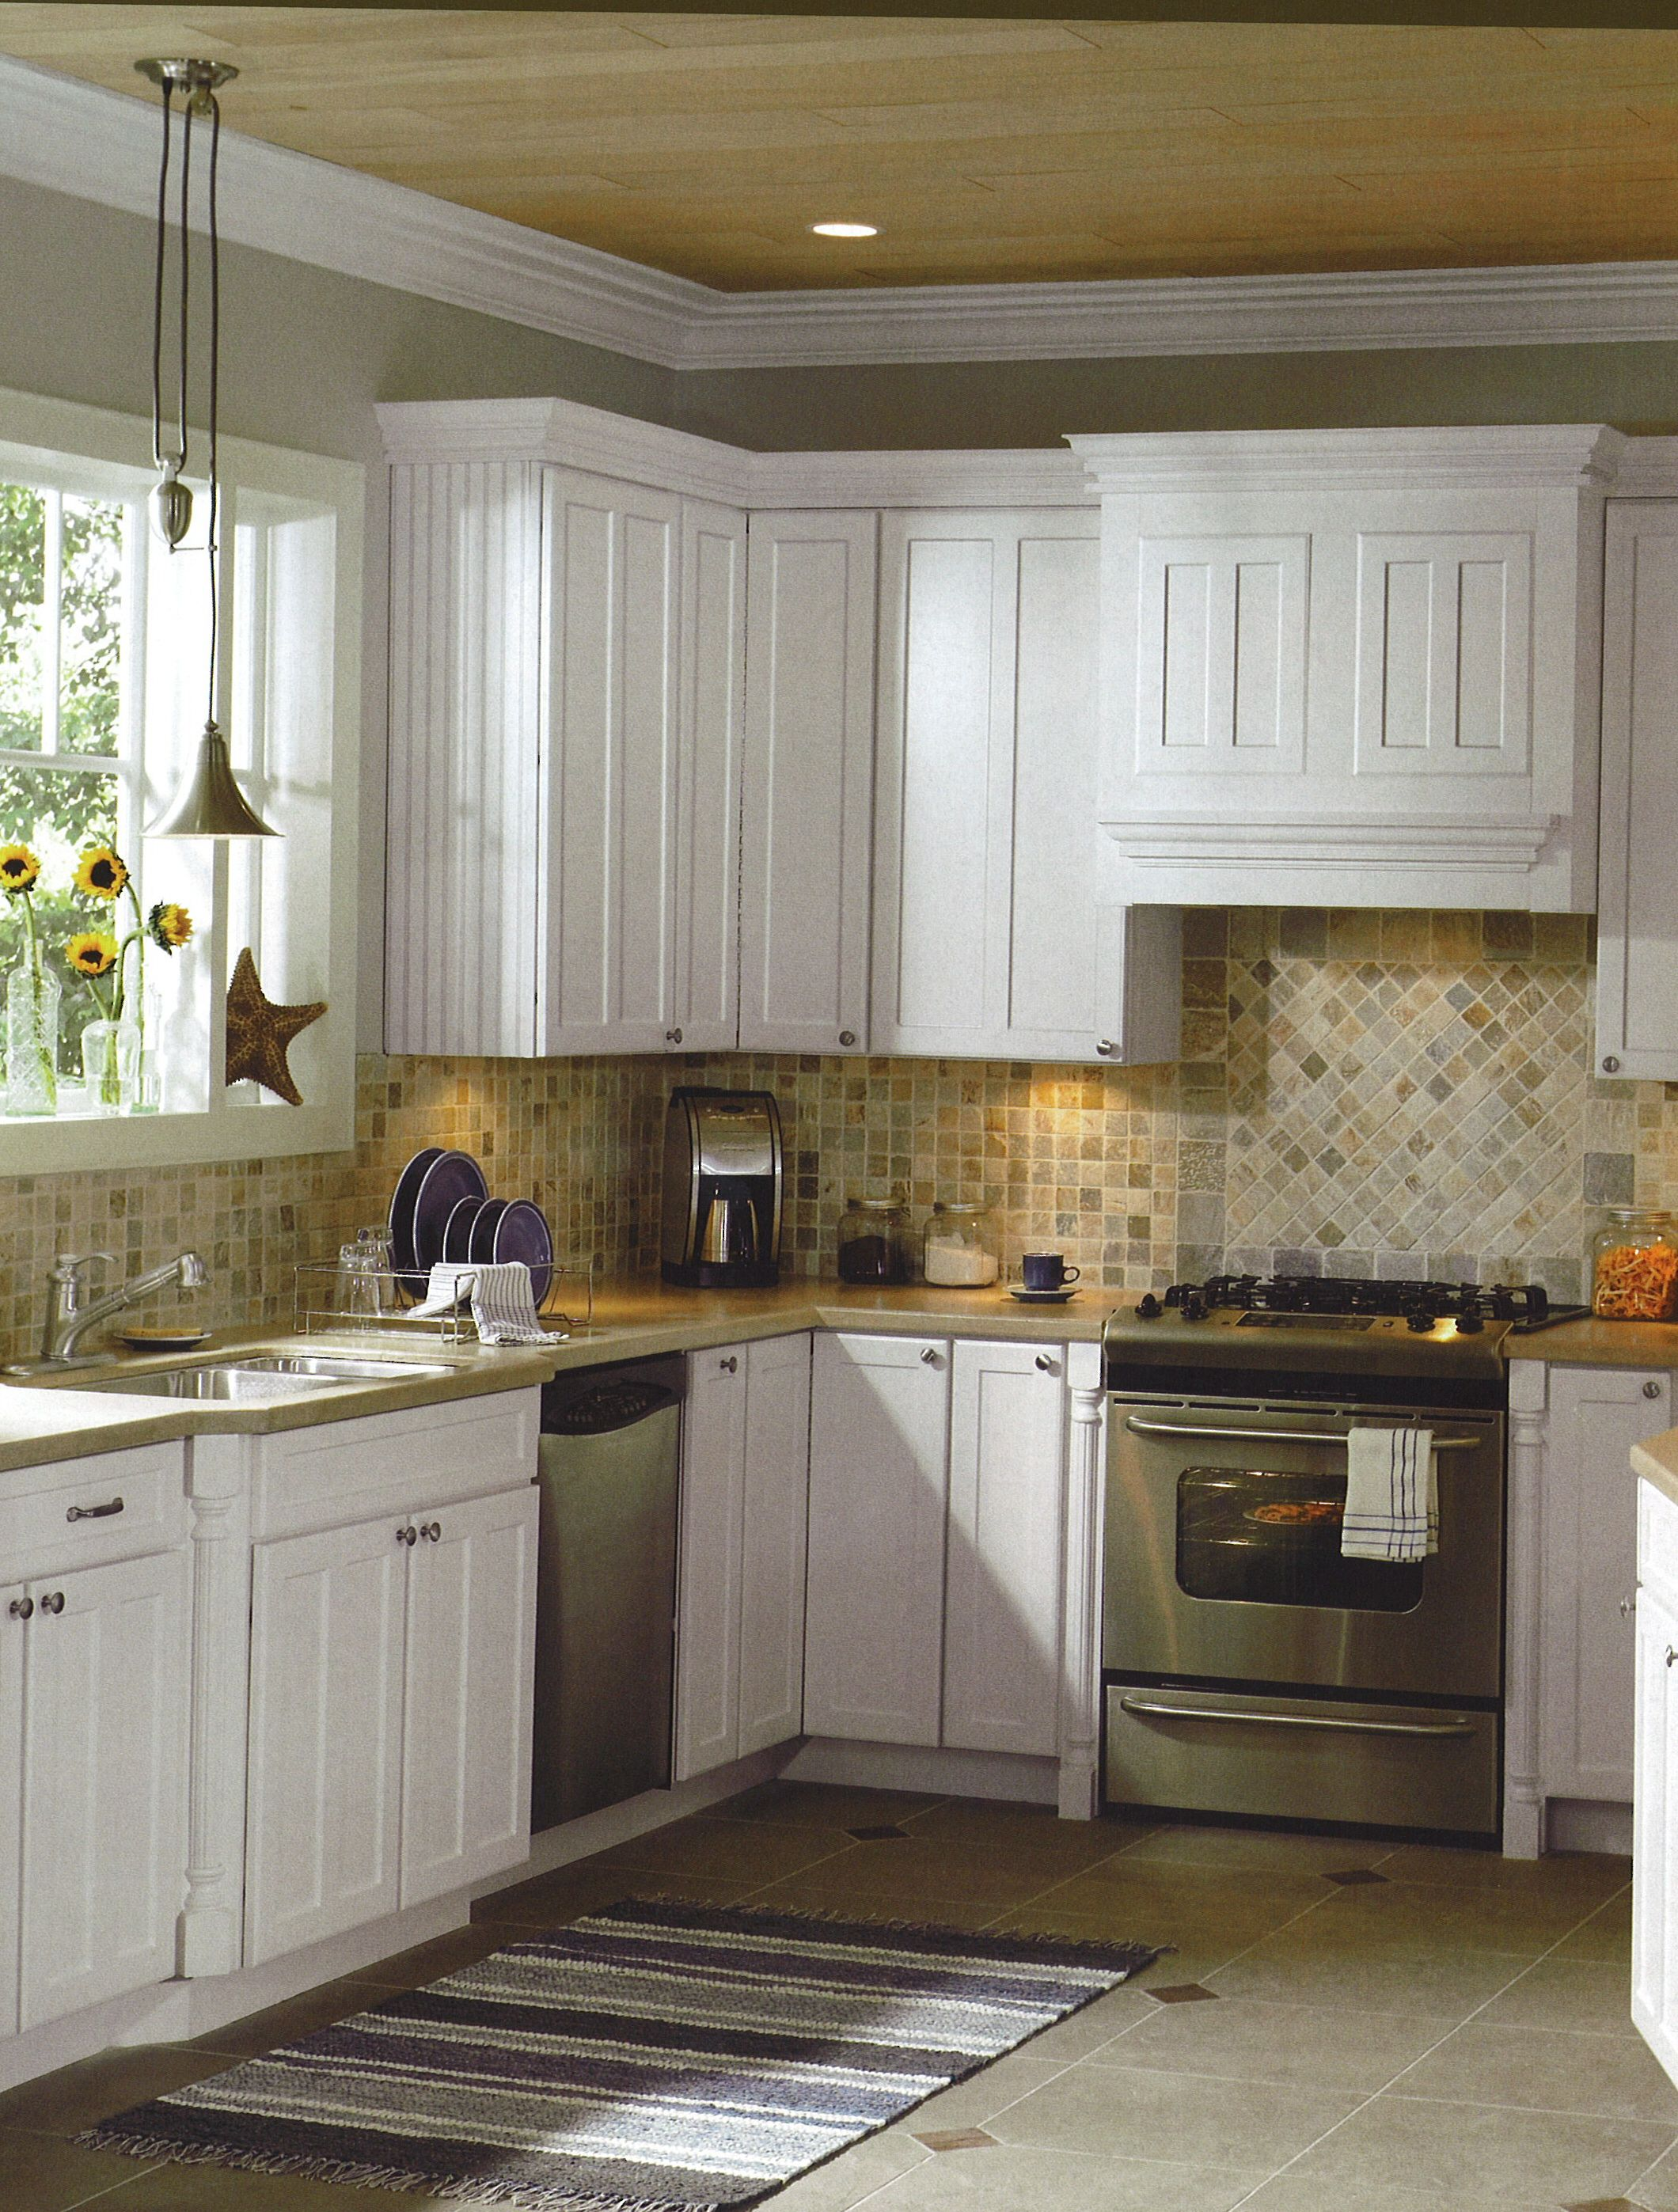 White Kitchen Design Ideas Best Floor And Counter Color For White Kitchen Cabinets Country